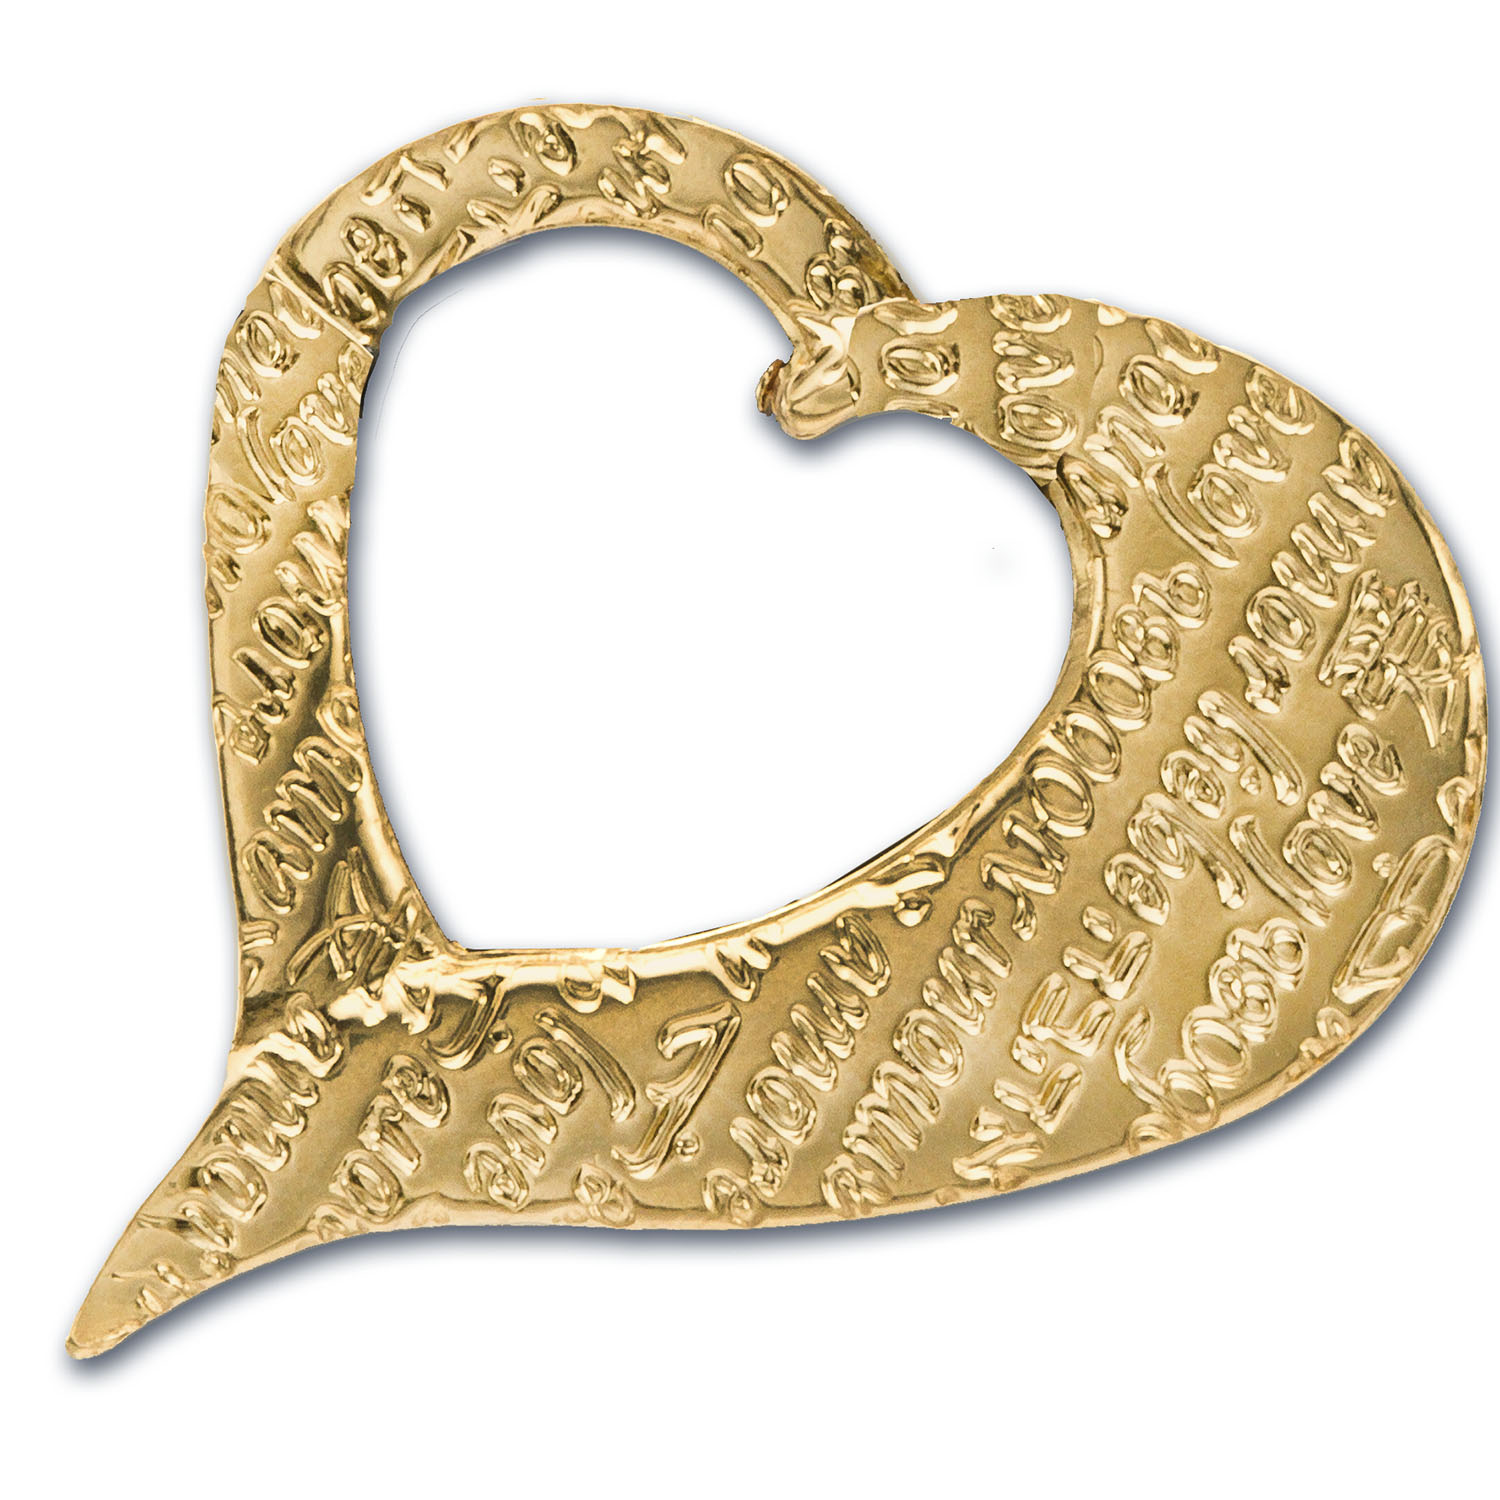 4 gram Gold Hearts - Pamp Suisse (18K, Flame of Love Talisman)